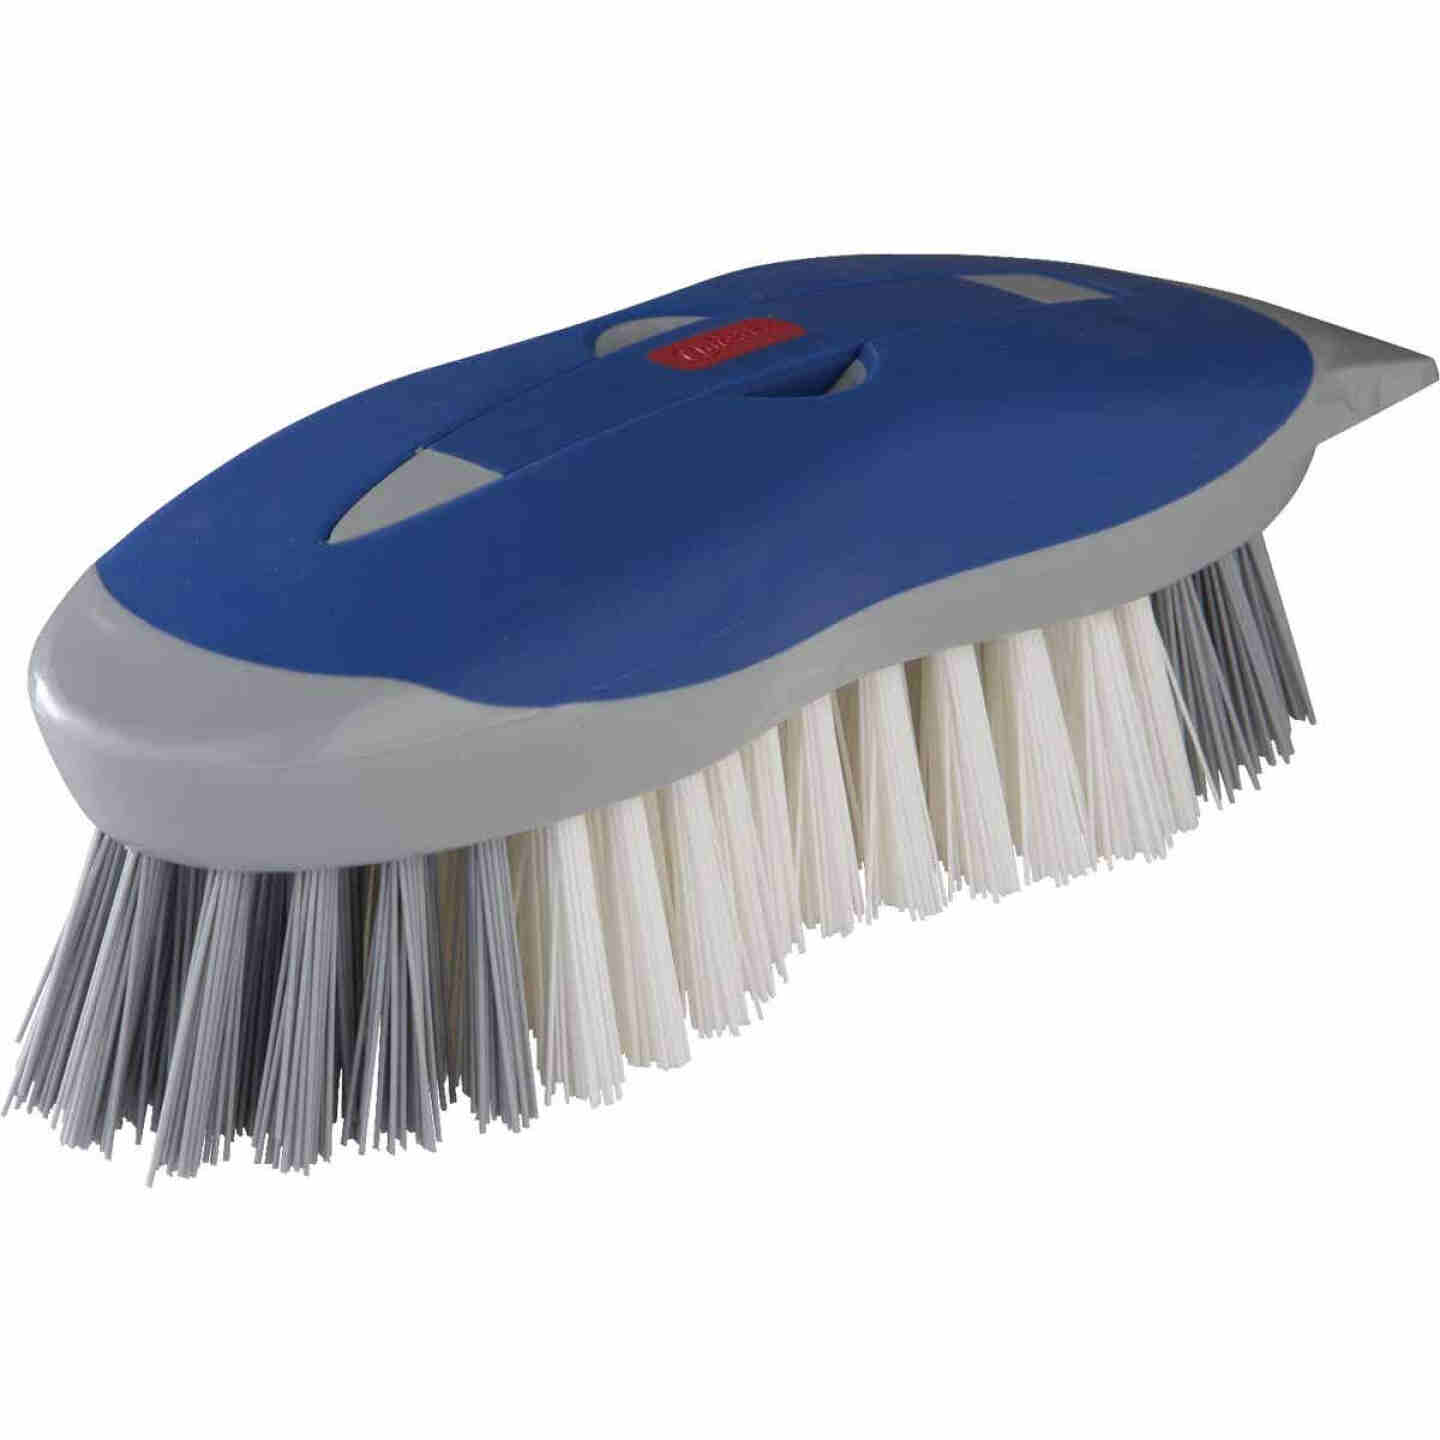 Quickie 2-in-1 Bar Scrub Brush Image 1